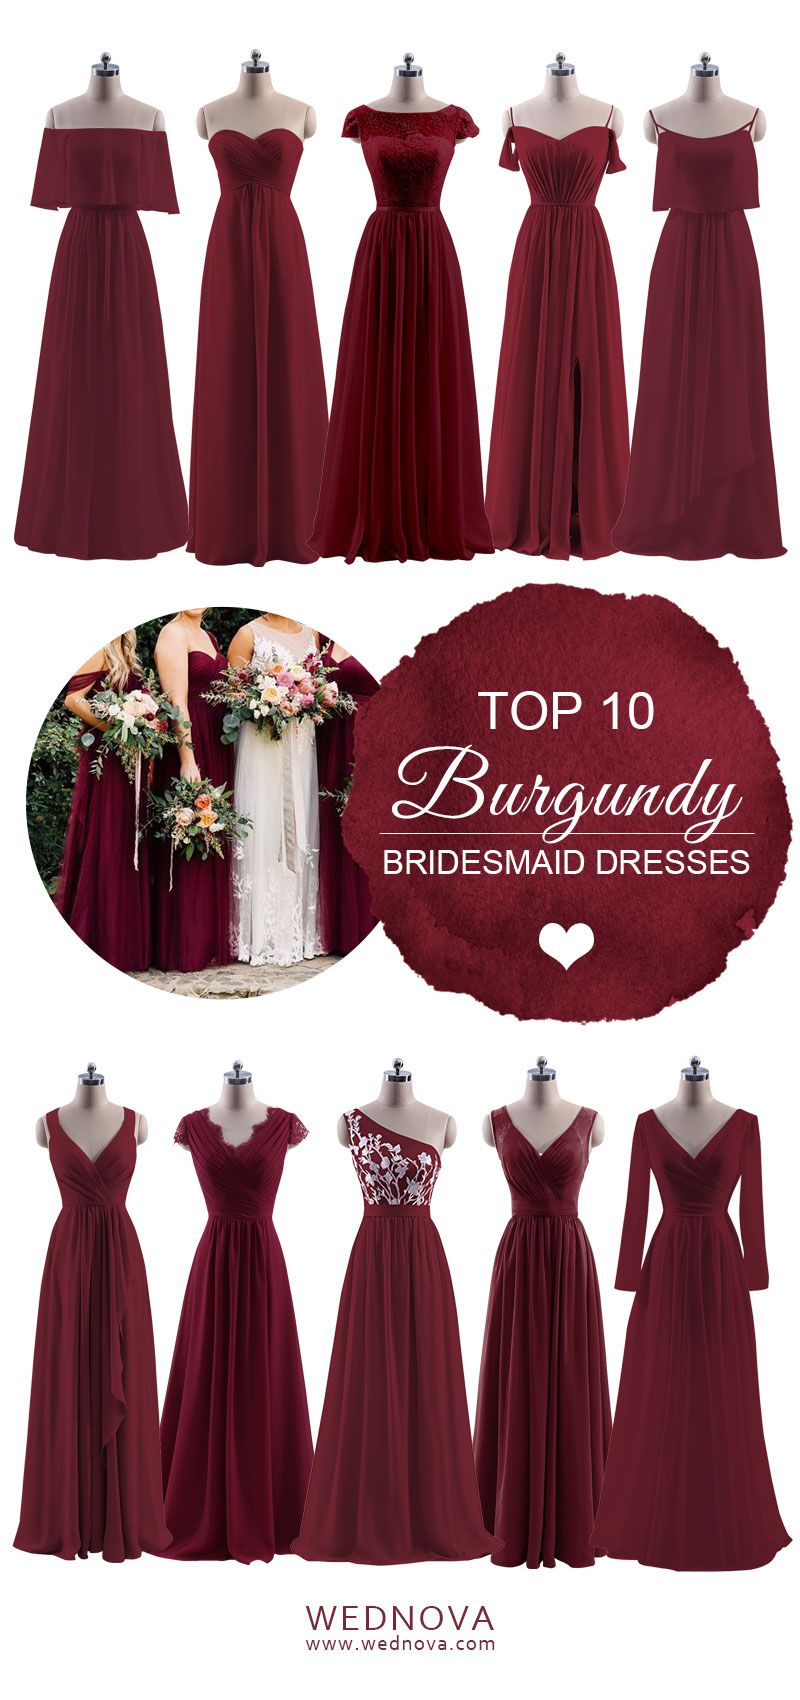 80fd1791f595 Top 10 Burgundy Bridesmaid Dresses lace details with long sleeves Chiffon # bridesmaids #bridesmaiddresses bridesmaid dresses mismatched | burgundy ...